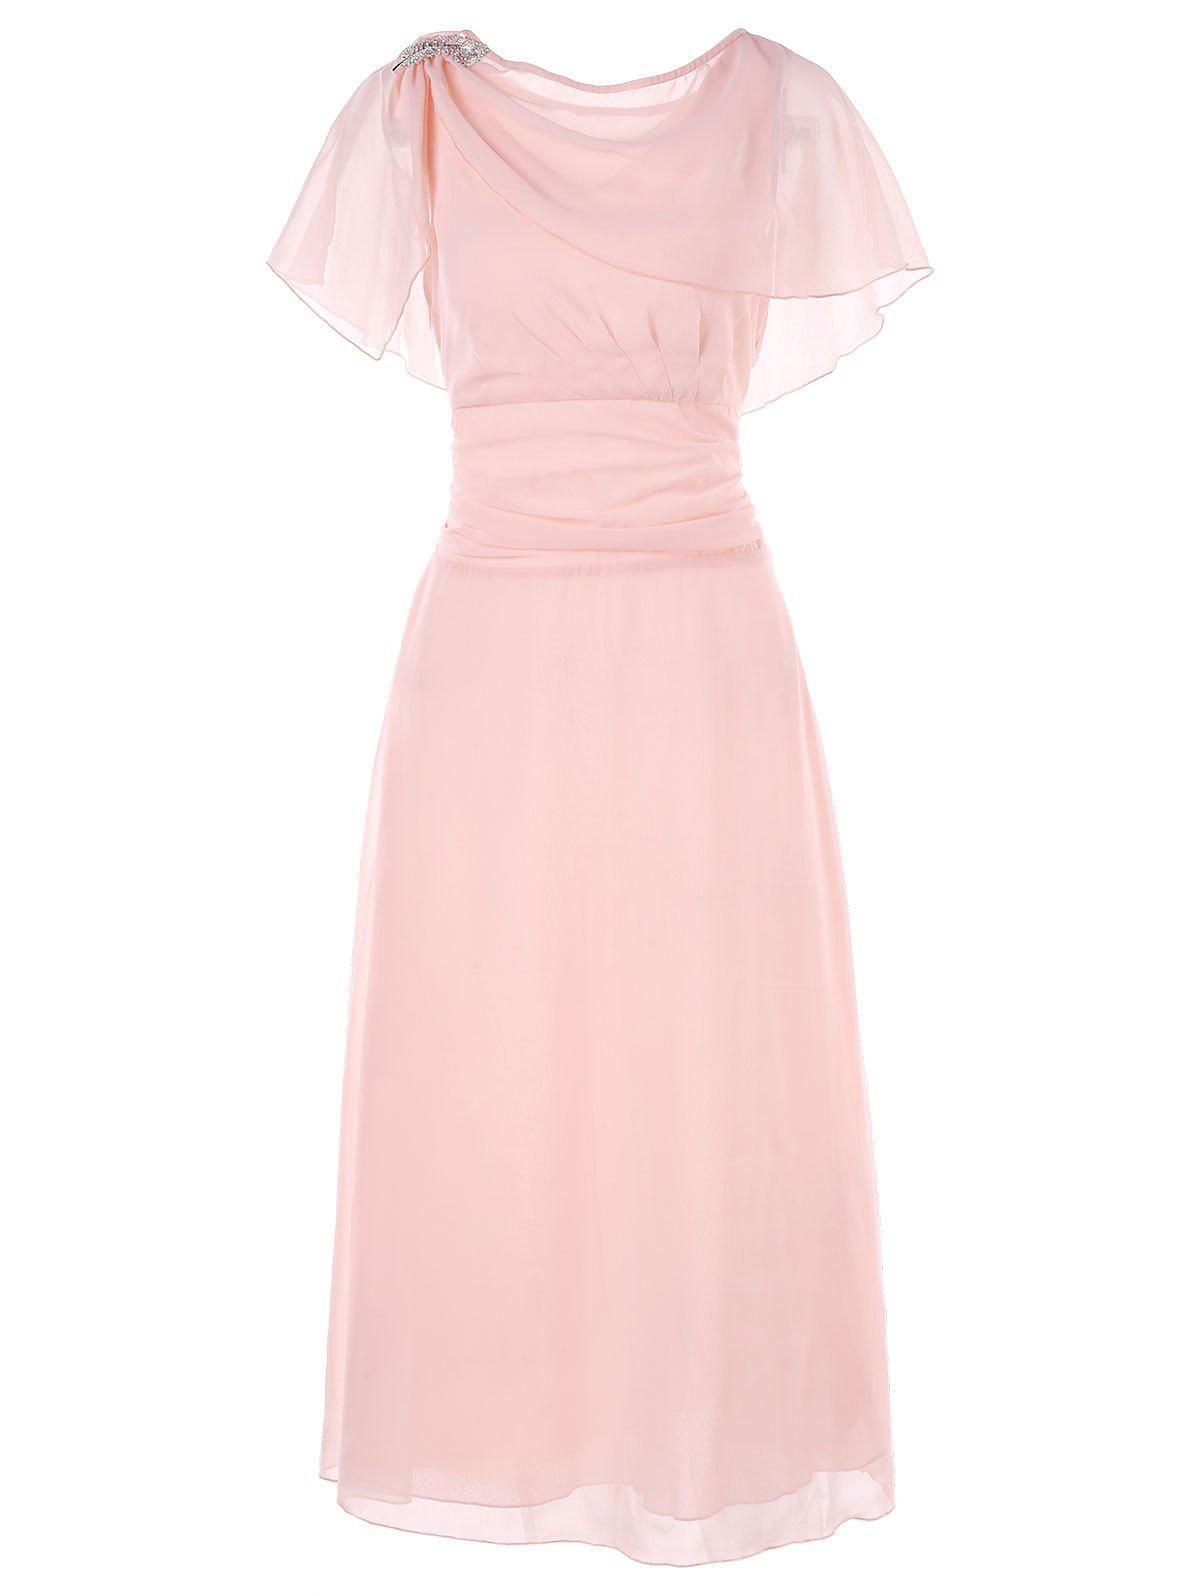 Trendy Brooch Chiffon Evening Dress